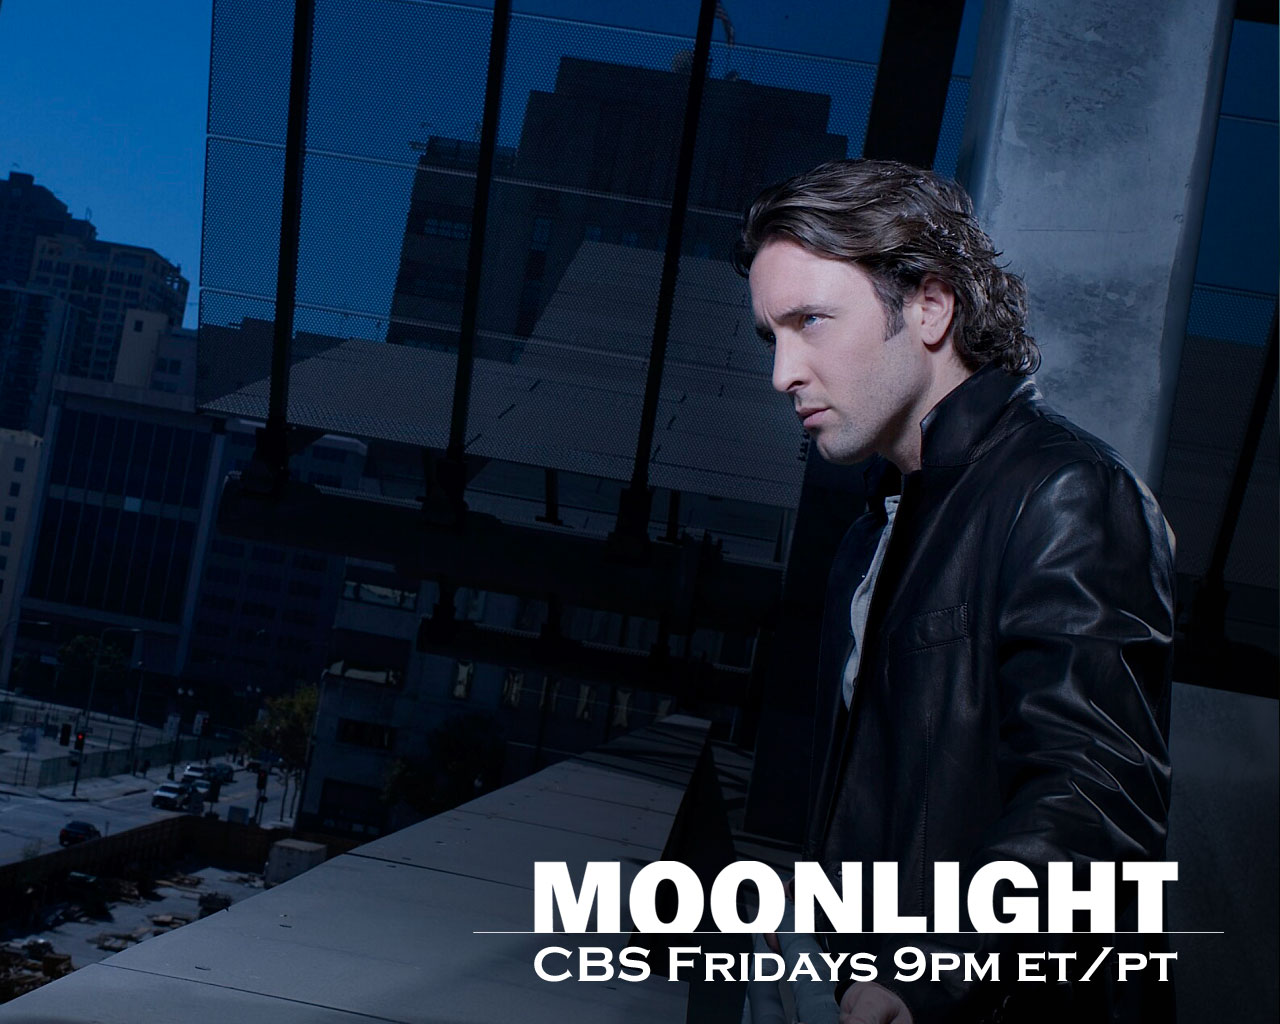 http://4.bp.blogspot.com/-NG1ShpomrKw/UA_YNfTx7mI/AAAAAAAABT0/scNfTVDWjFk/s1600/Alex_O_Loughlin_in_Moonlight_TV_Series_Wallpaper_4_1280.jpg